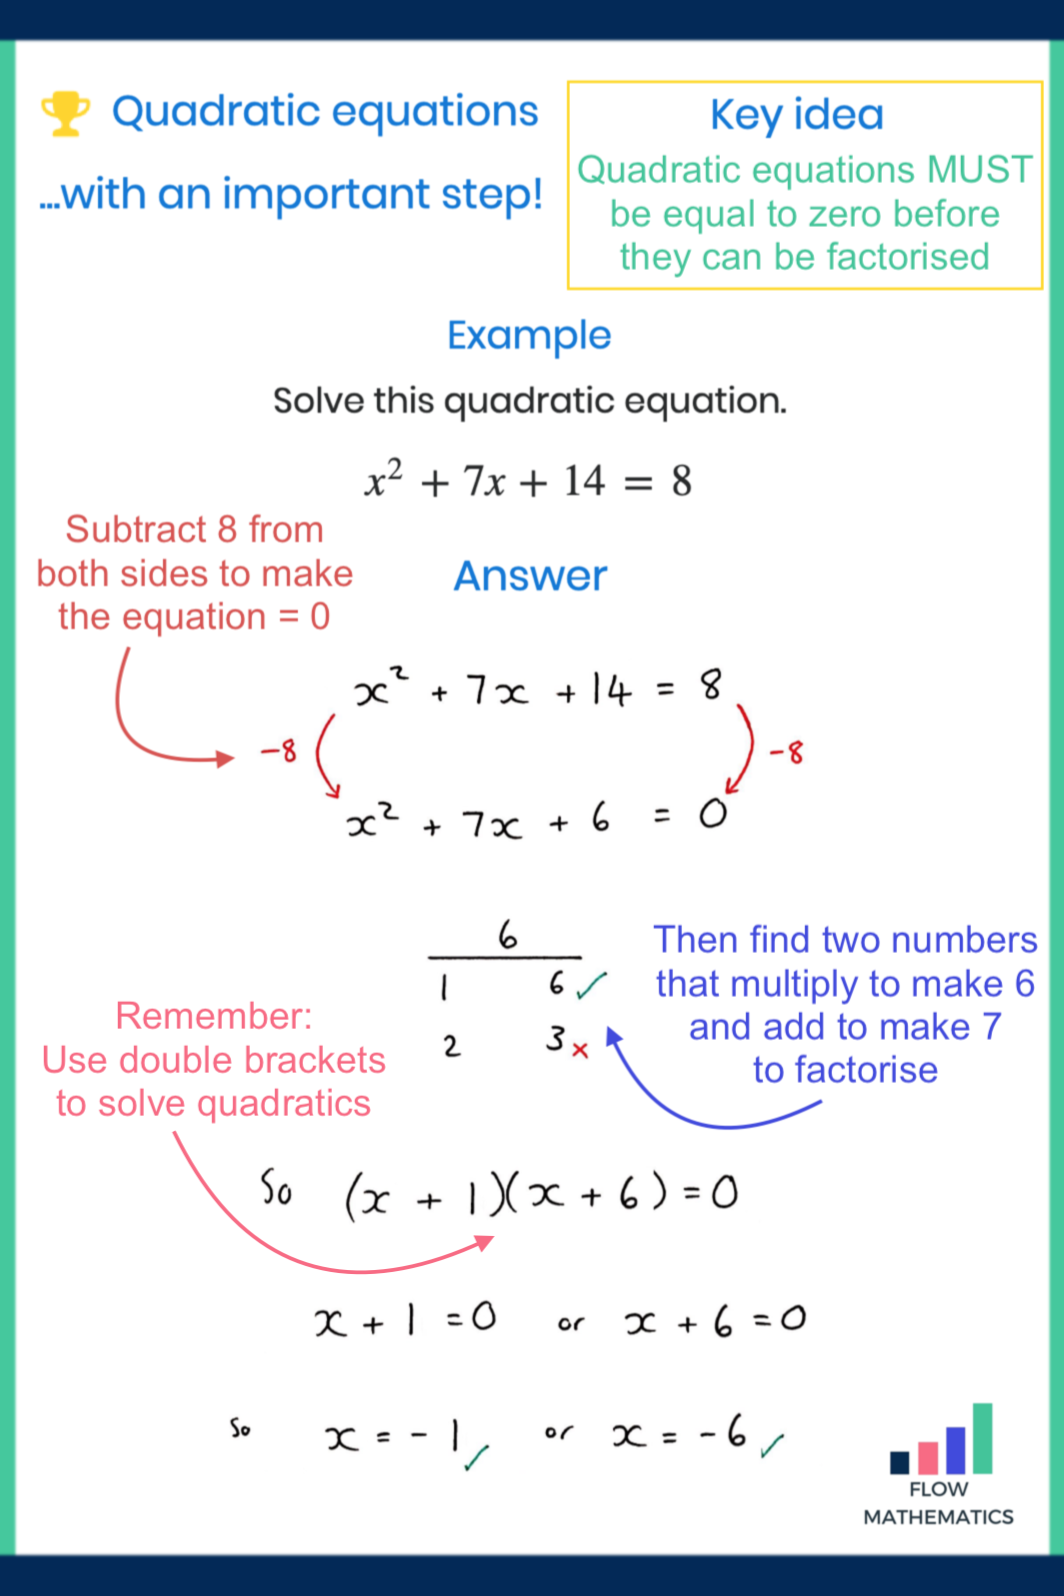 Quadratic Equations That Need Rearranging First Key Idea